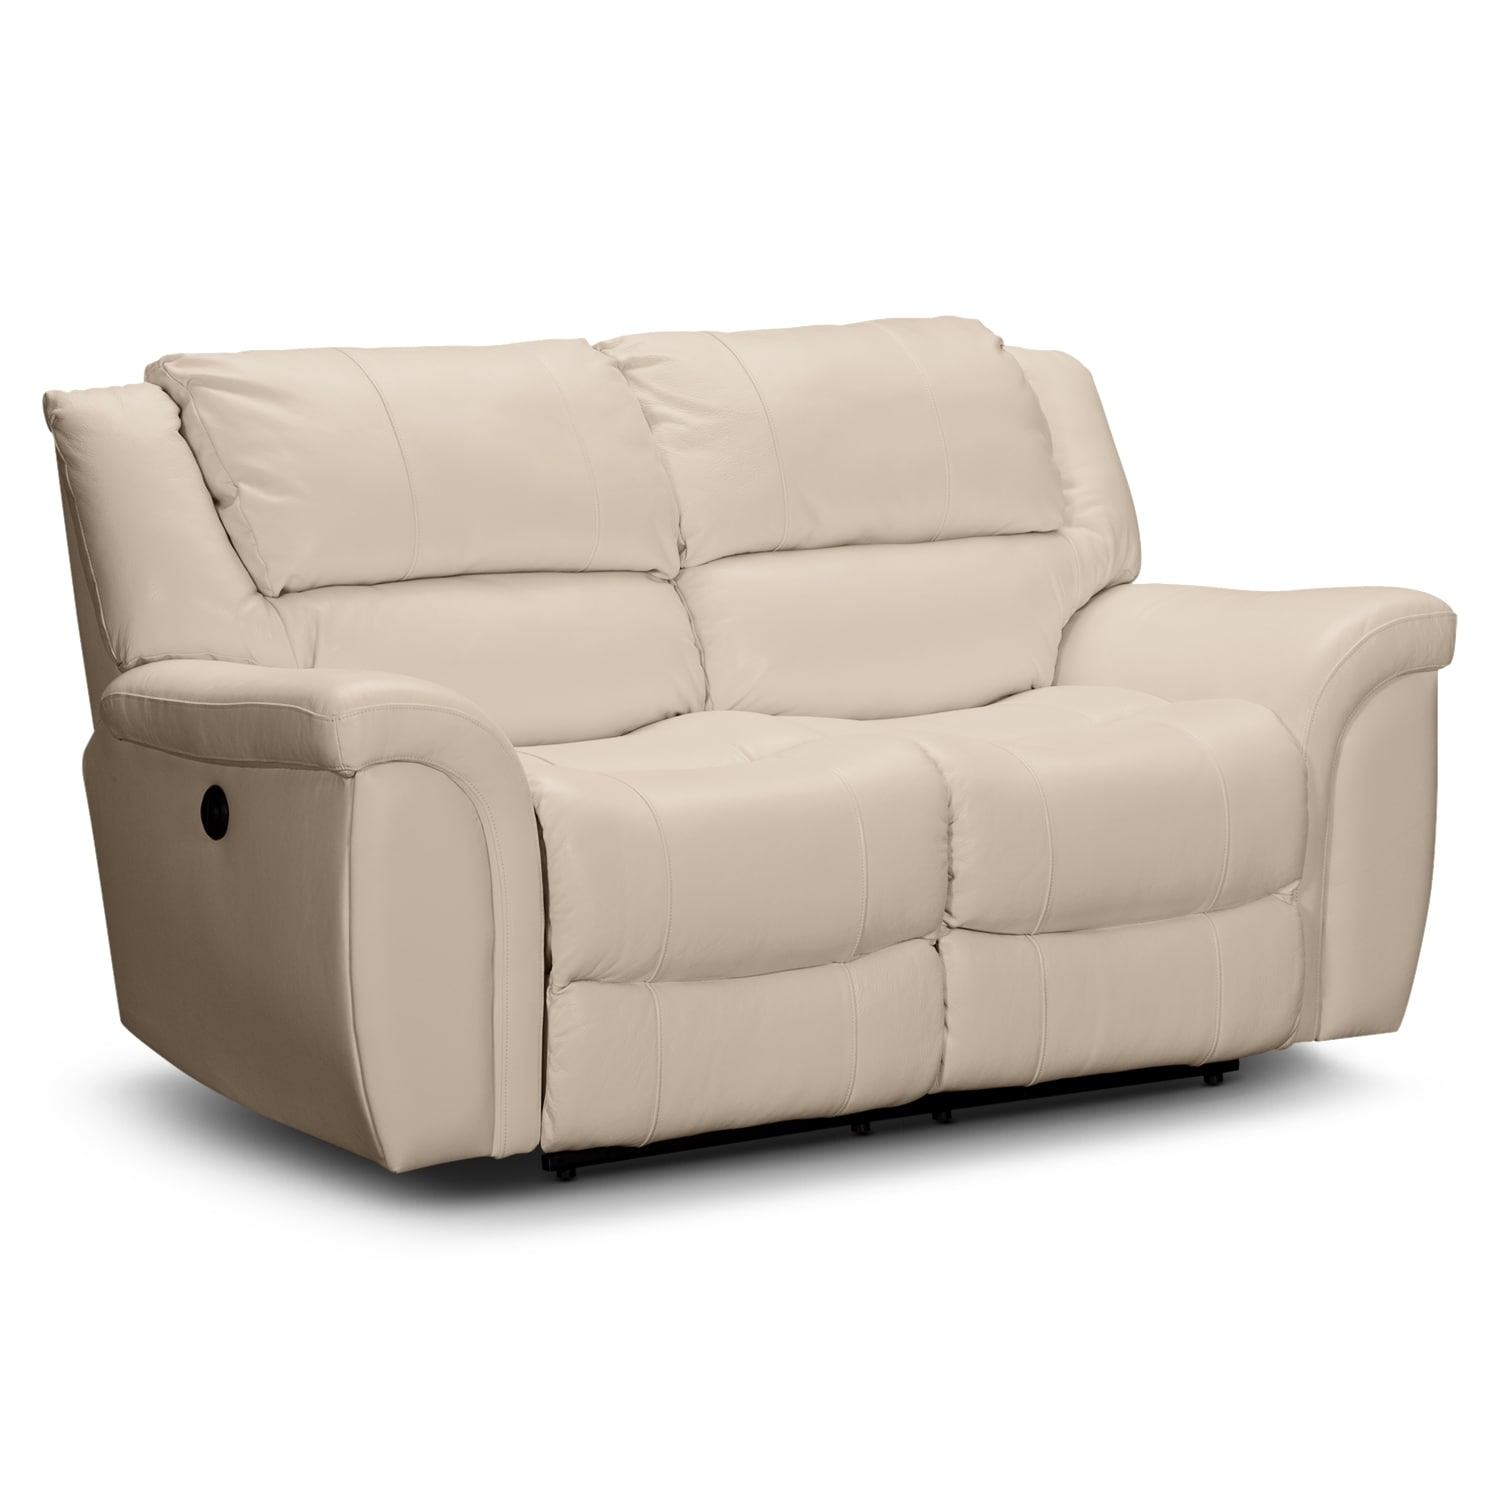 Furnishings for every room online and store furniture sales value city furniture Leather reclining loveseat